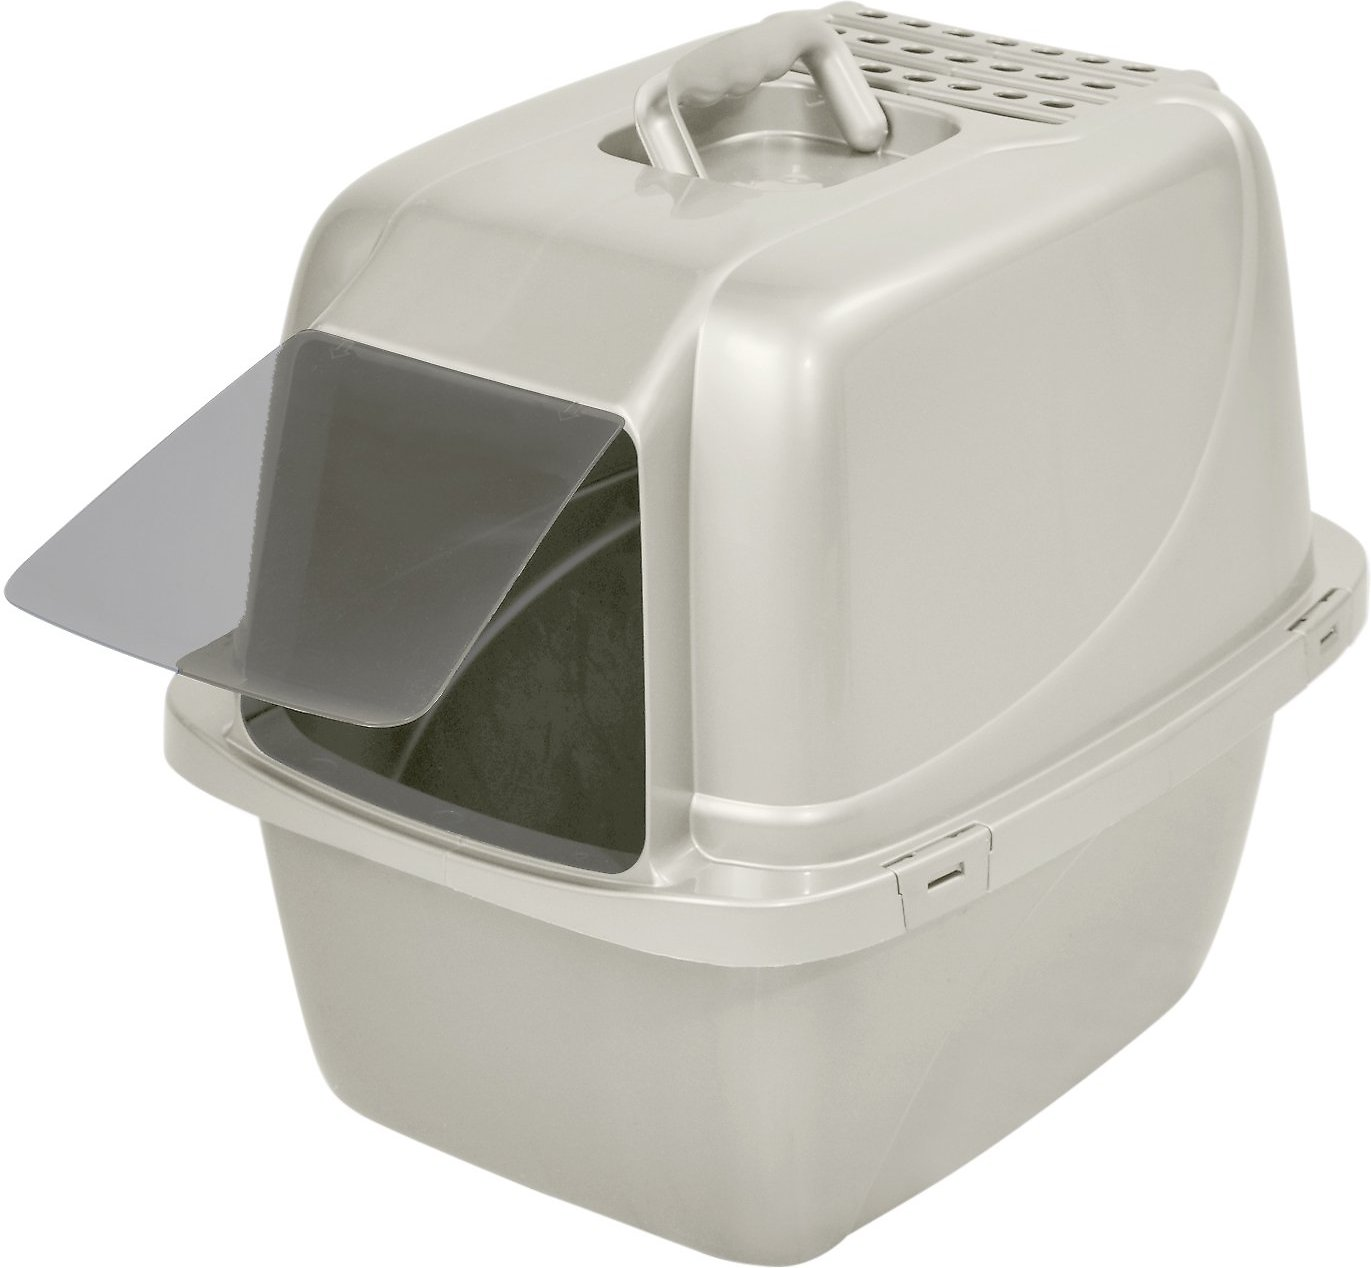 narrow litter box furniture video van ness enclosed cat litter pan large white chewycom